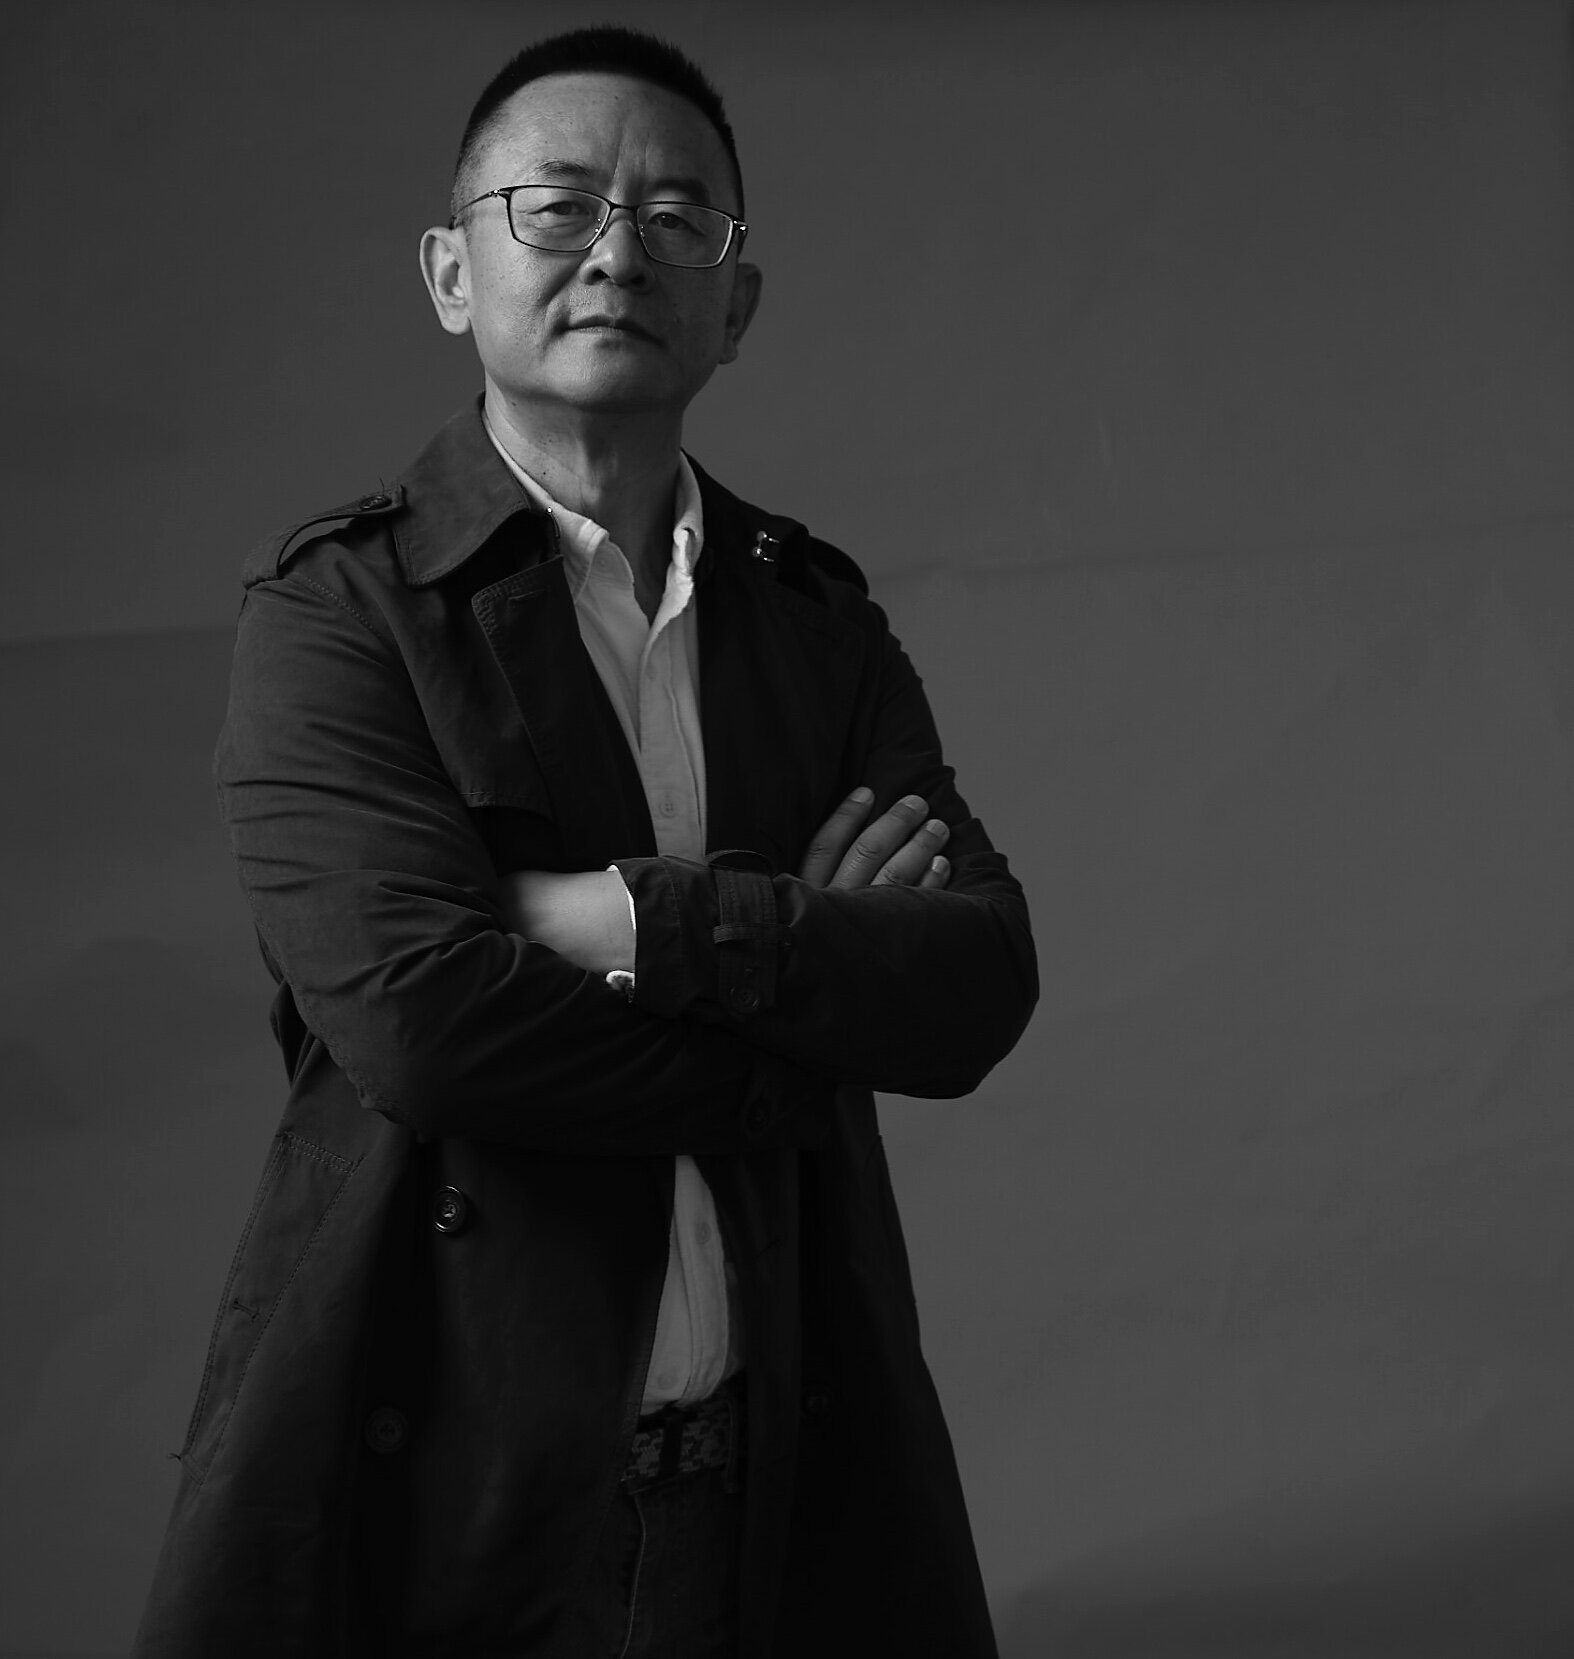 Hao Zhou   ZHOU Hao is a documentary filmmaker who has worked as a journalist for more than a decade, producing documentaries since 2001. ZHOU's works have won awards and been screened at film festivals around the world more than a hundred times. His 2014 film Cotton won Best Documentary at the 51st Golden Horse Film Festival. ZHOU's 2015 film,  The Chinese Mayor , won the Special Jury Award for Unparalleled Access at the 31st Sundance Film Festival, as well as Best Documentary at the 9th Asian Film Awards, and won Zhou the Best Documentary award for the second time in a row at the 52nd Golden Horse Film Festival.